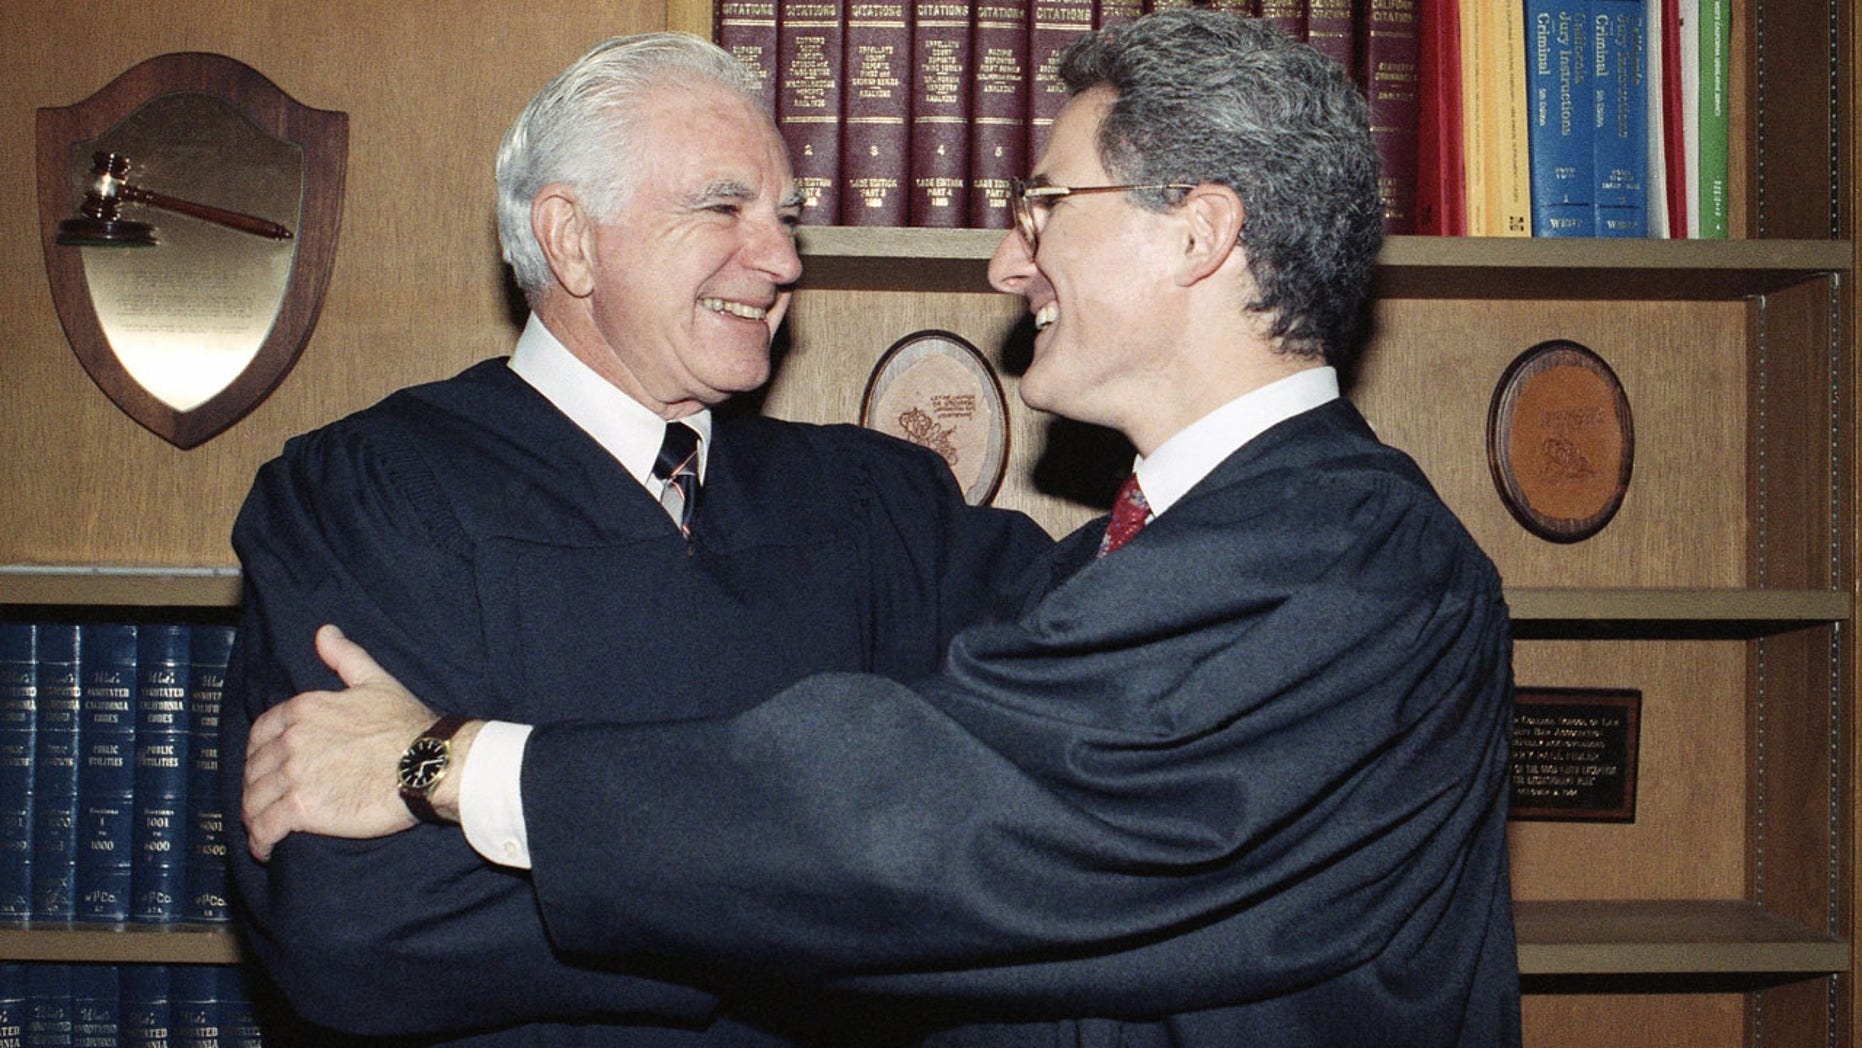 Oct. 13, 1989: Retired Judge Joseph A. Wapner of TV's 'The People's Court' congratulates his son, Judge Frederick N. Wapner, right, as he was enrobed as a Municipal Court judge in Los Angeles.